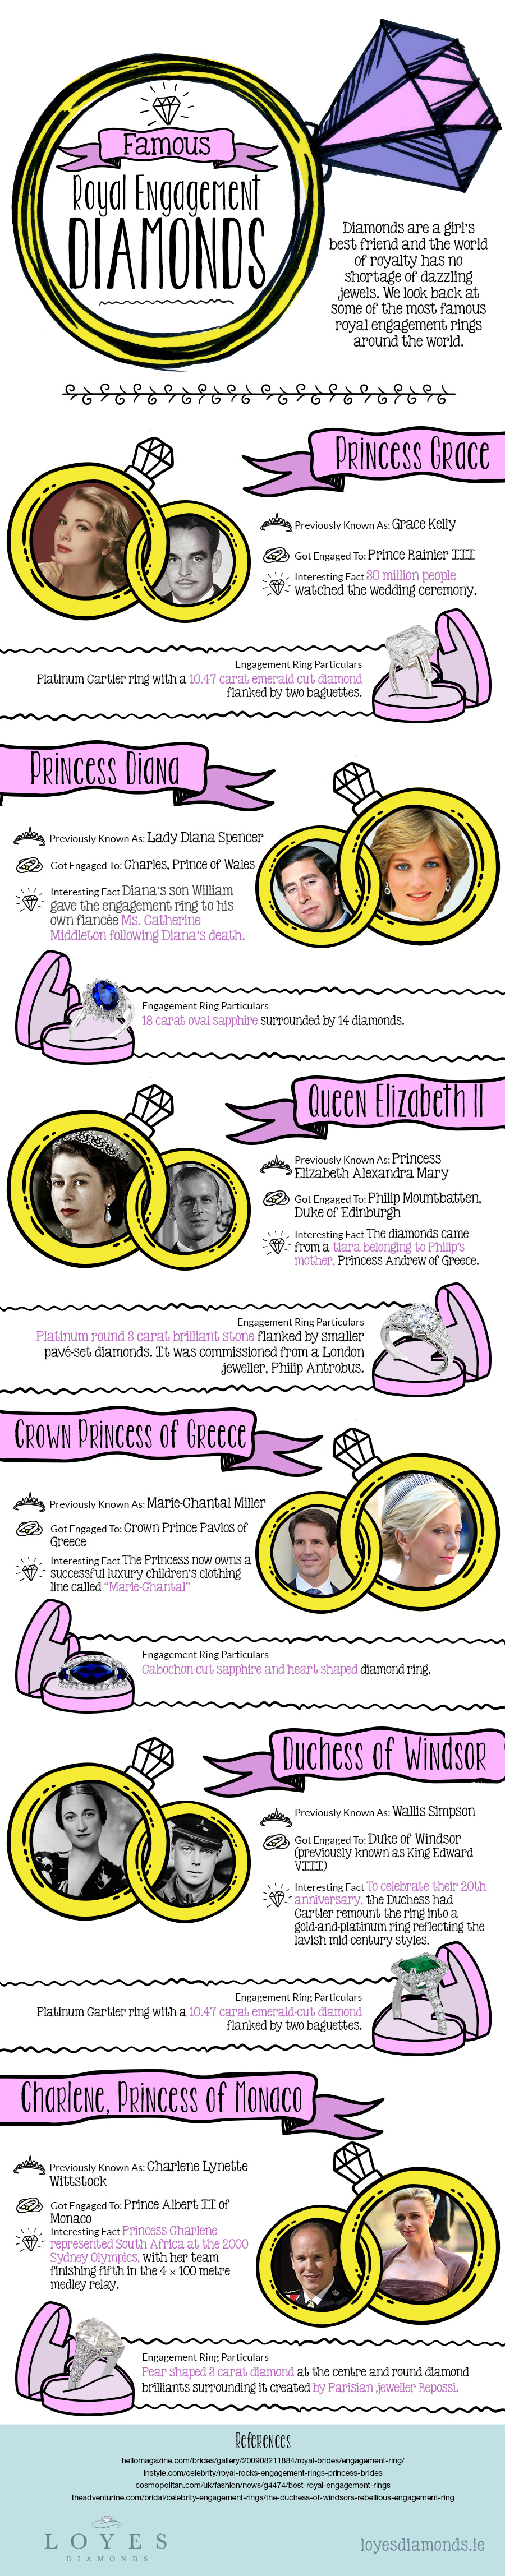 Famous Royal Engagement Rings